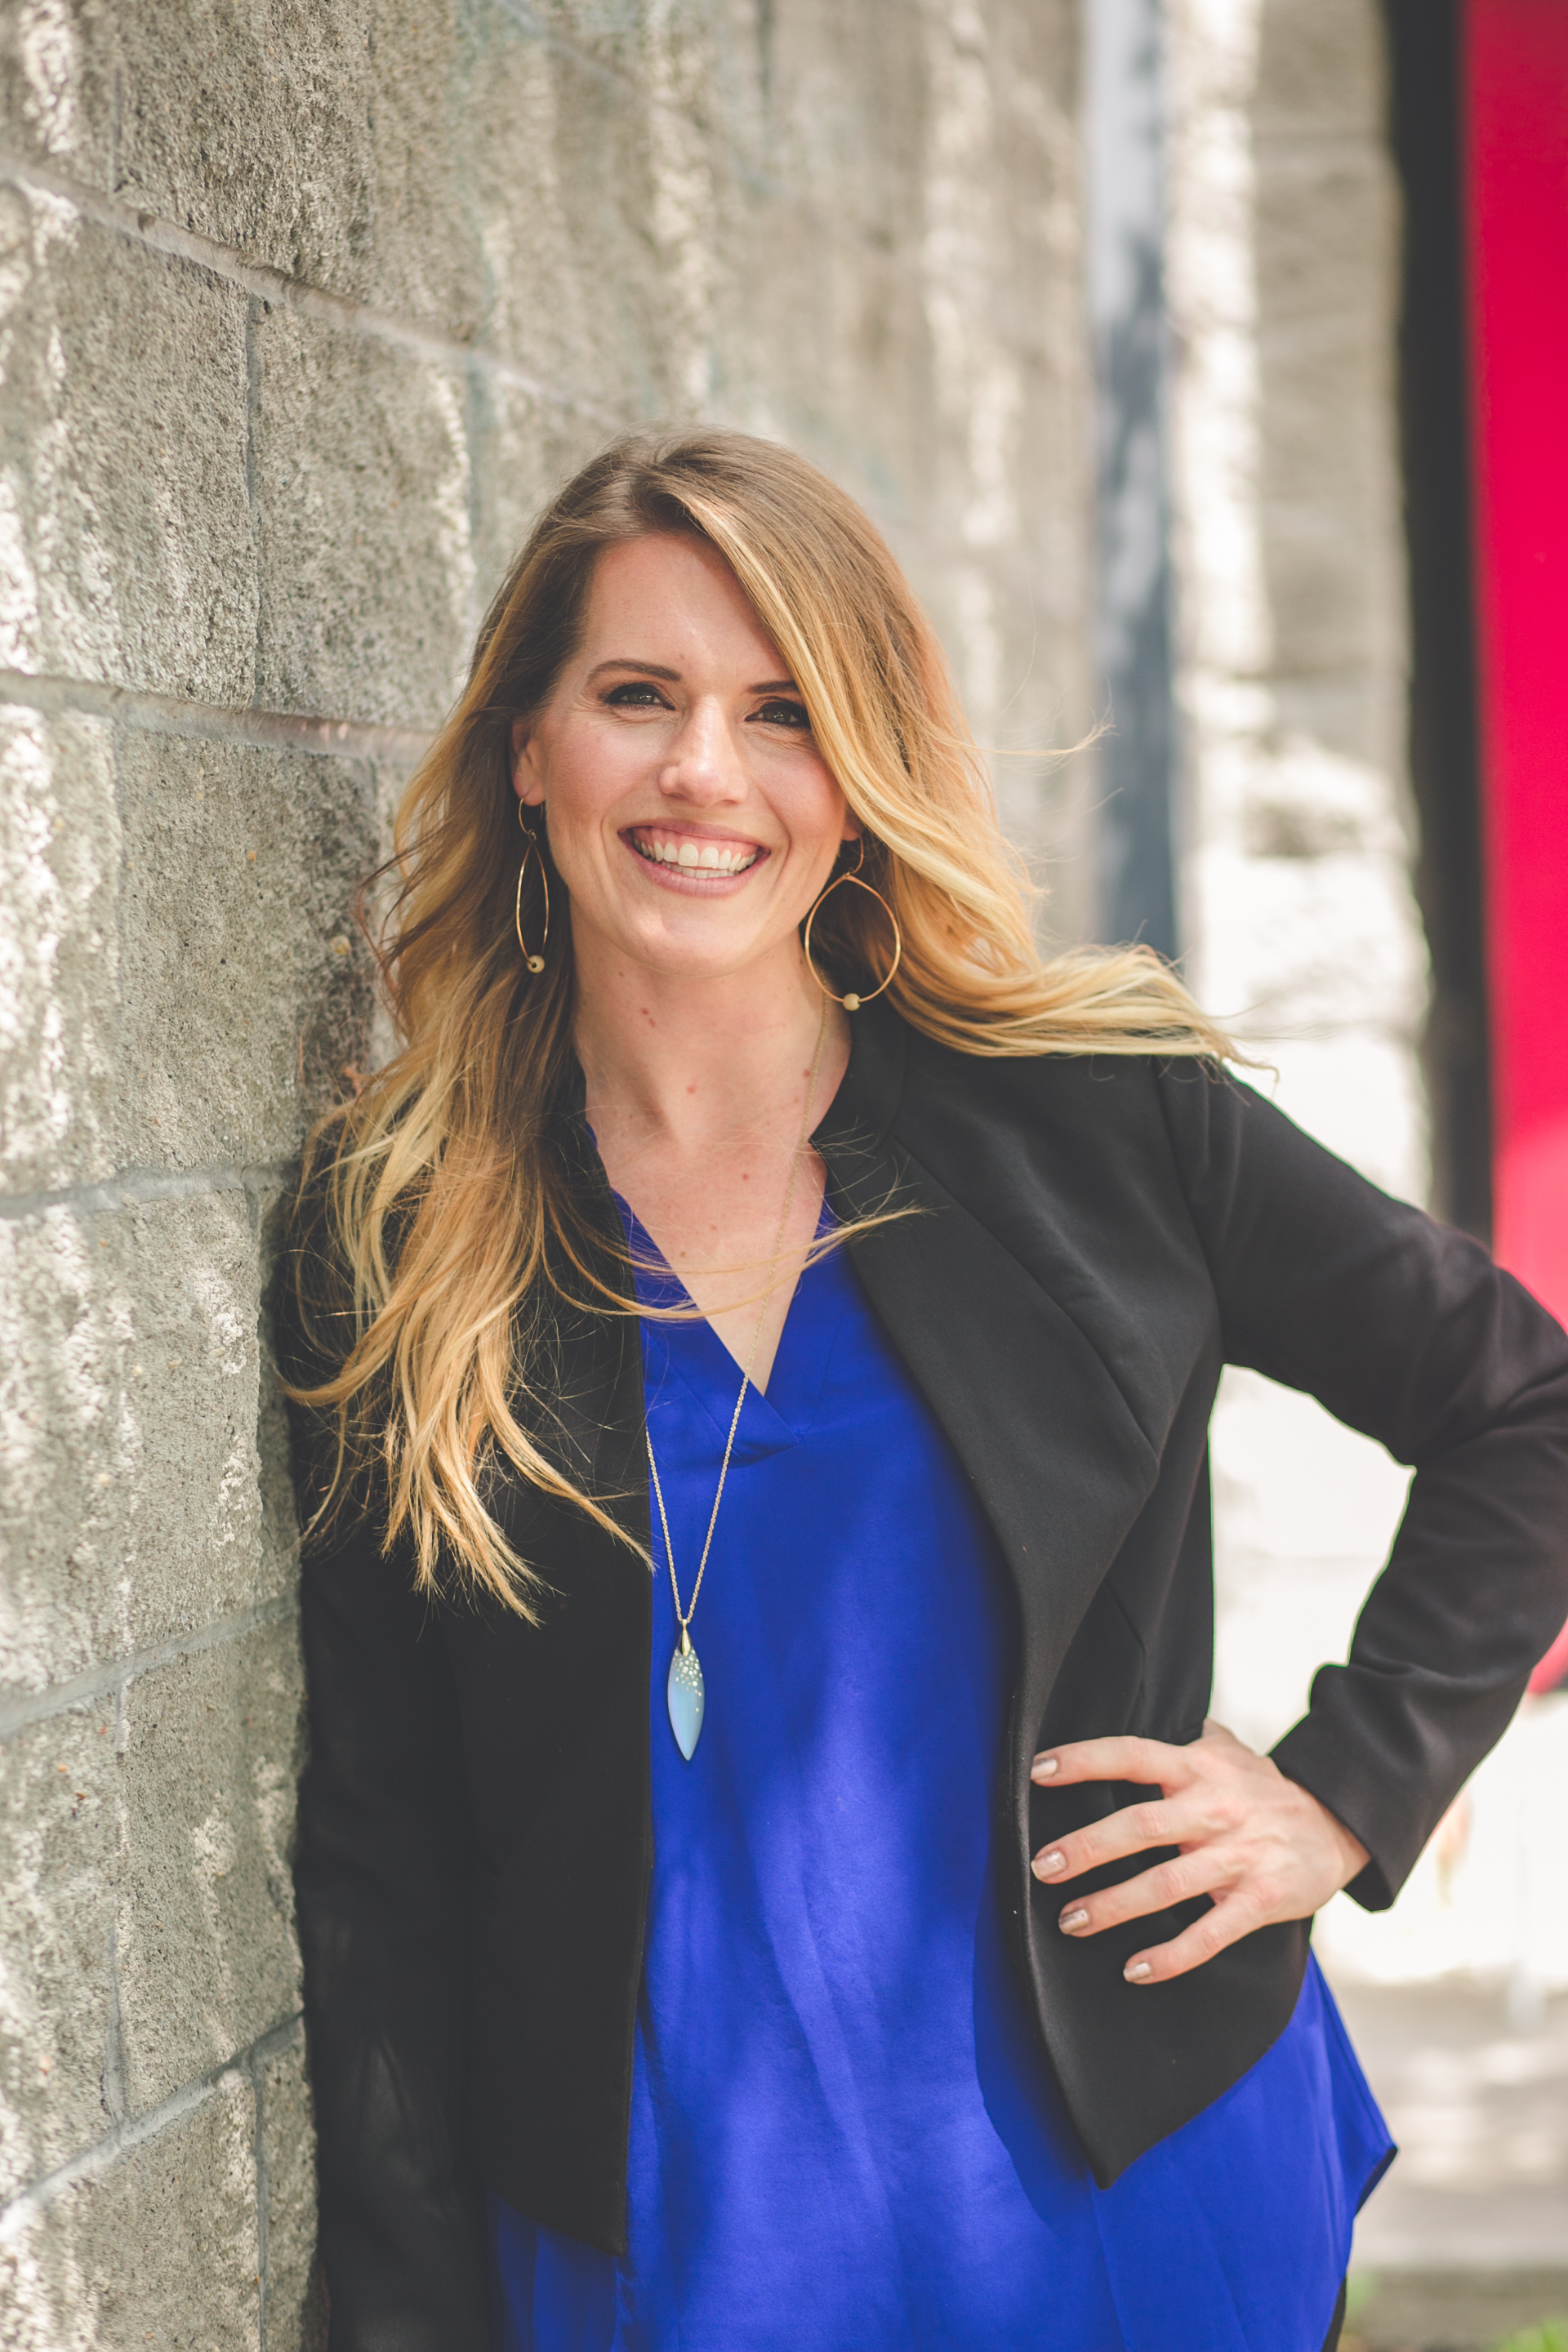 Beyond-The-Technique-Blog-Podcast-Ashley-Toliver-Williams-Less-is-Definitely-More-Kati-Whitledge-Samantha-Georgson.jpg